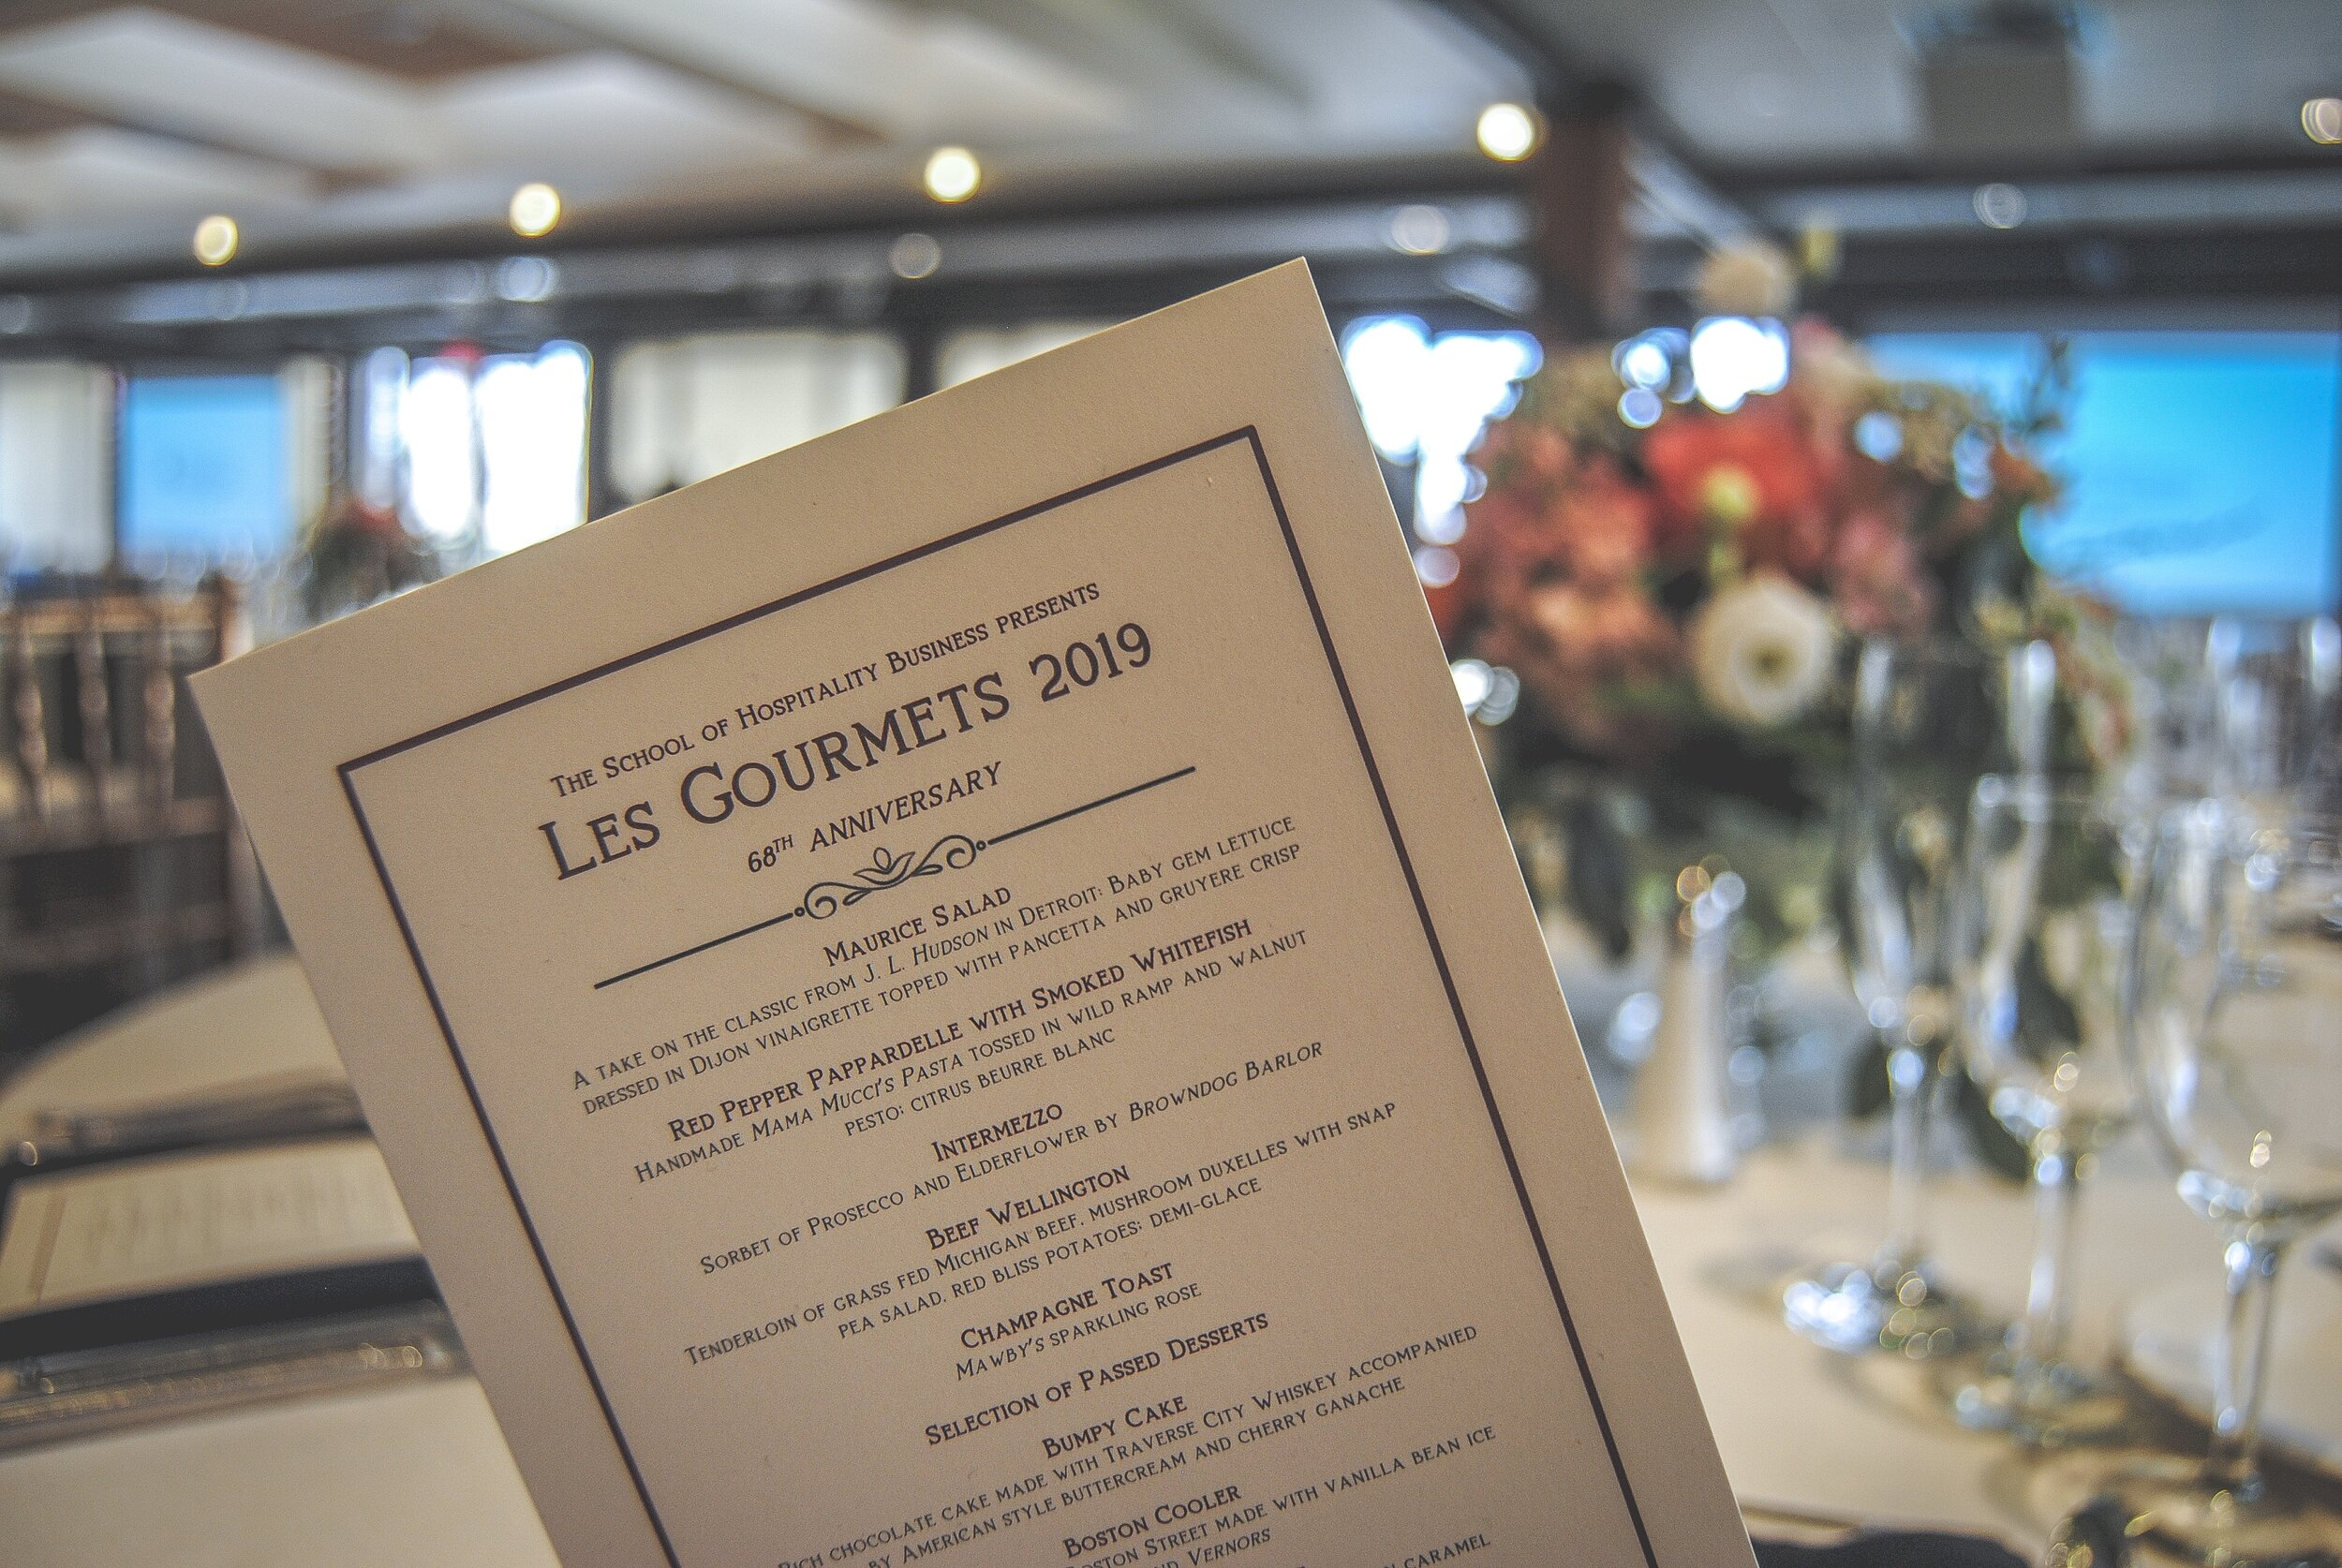 Our menu from the previous year's  Les Gourmets